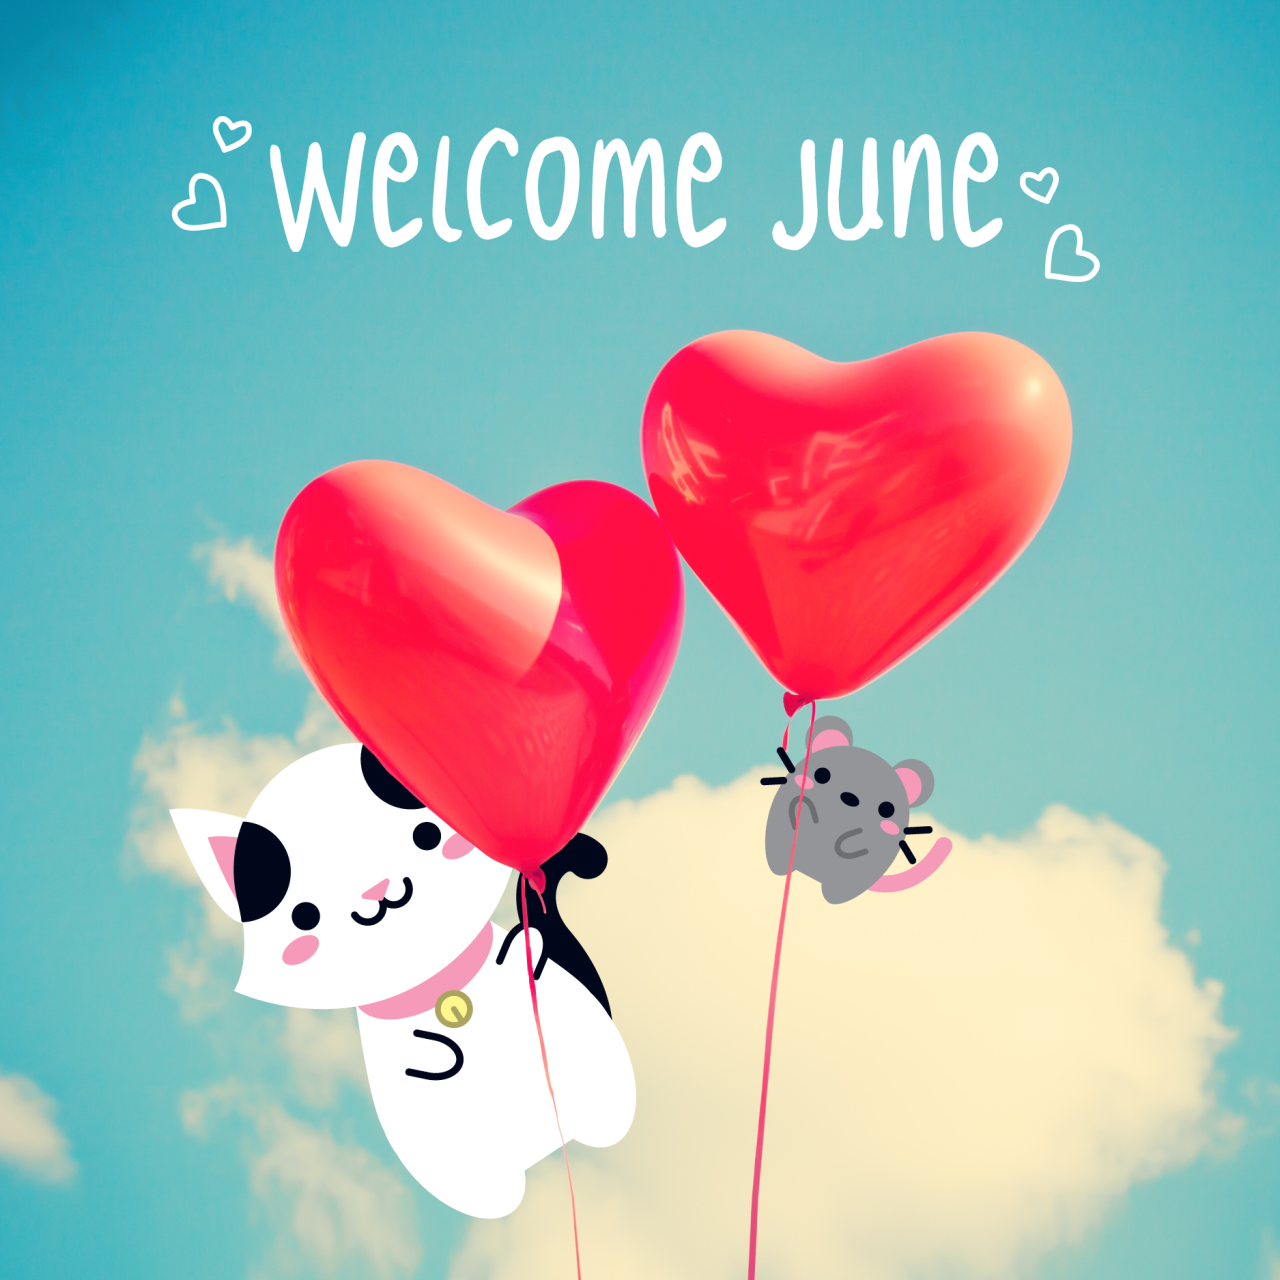 Welcome June Images Love Free Download